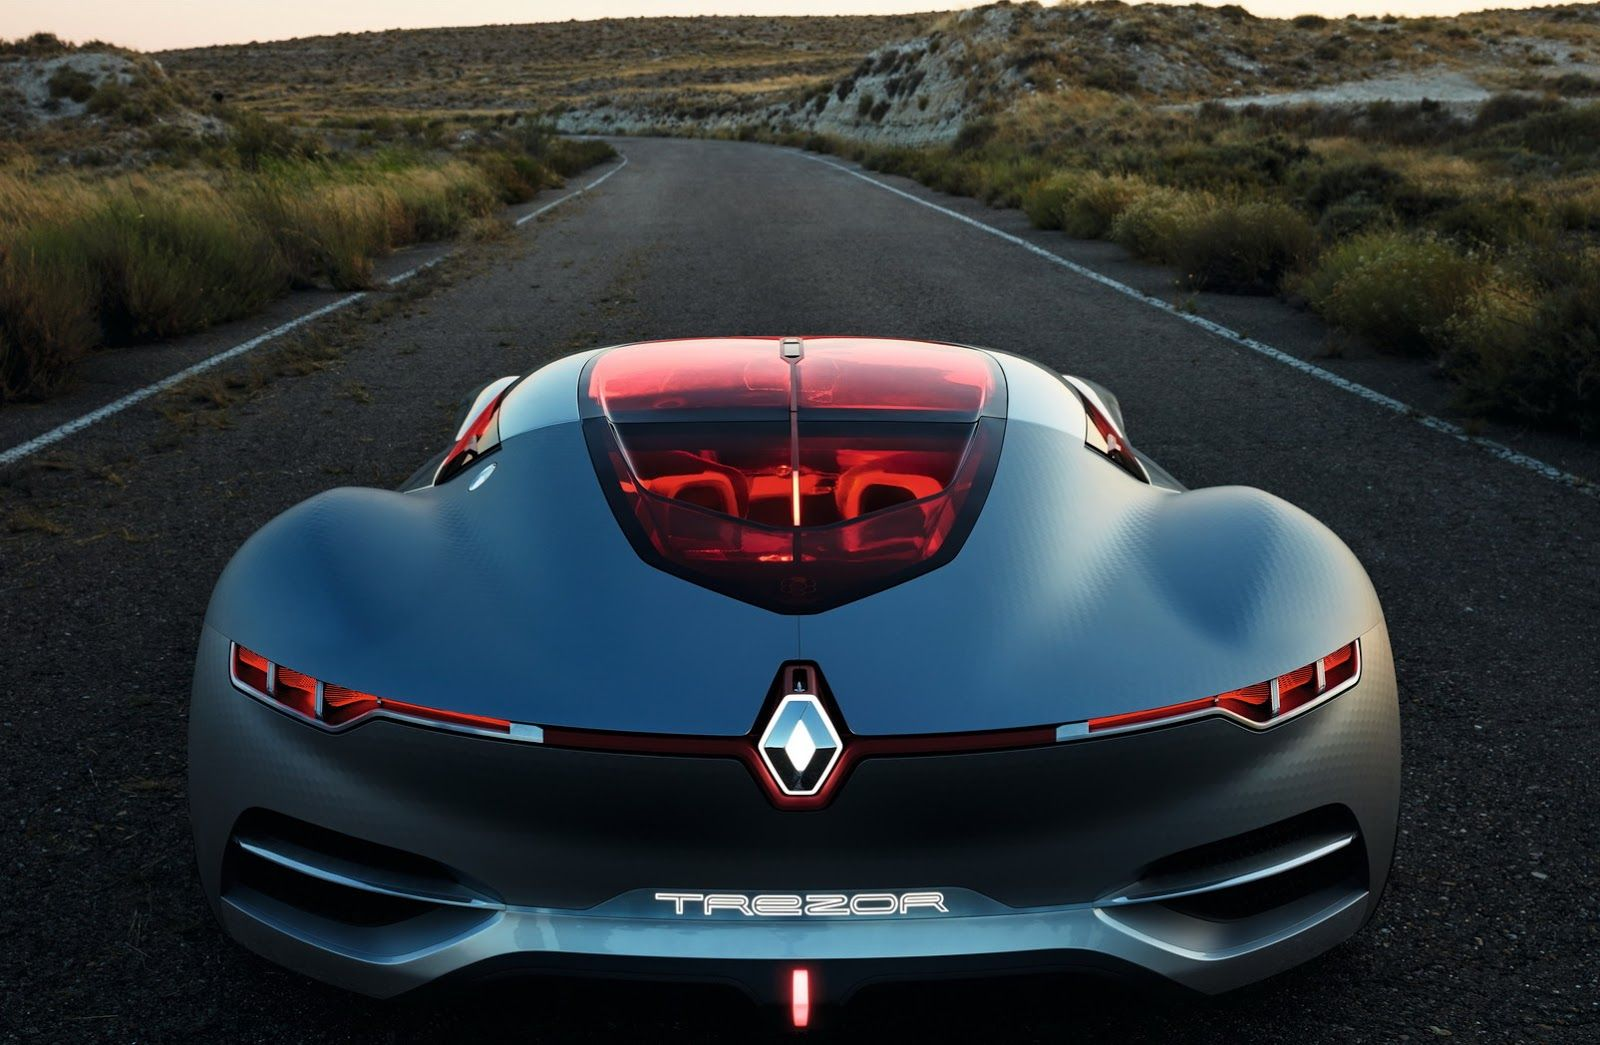 Renault's Eye-Catching Trezor Concept Is A Taste Of Things To Come [102 Photos] | Carscoops